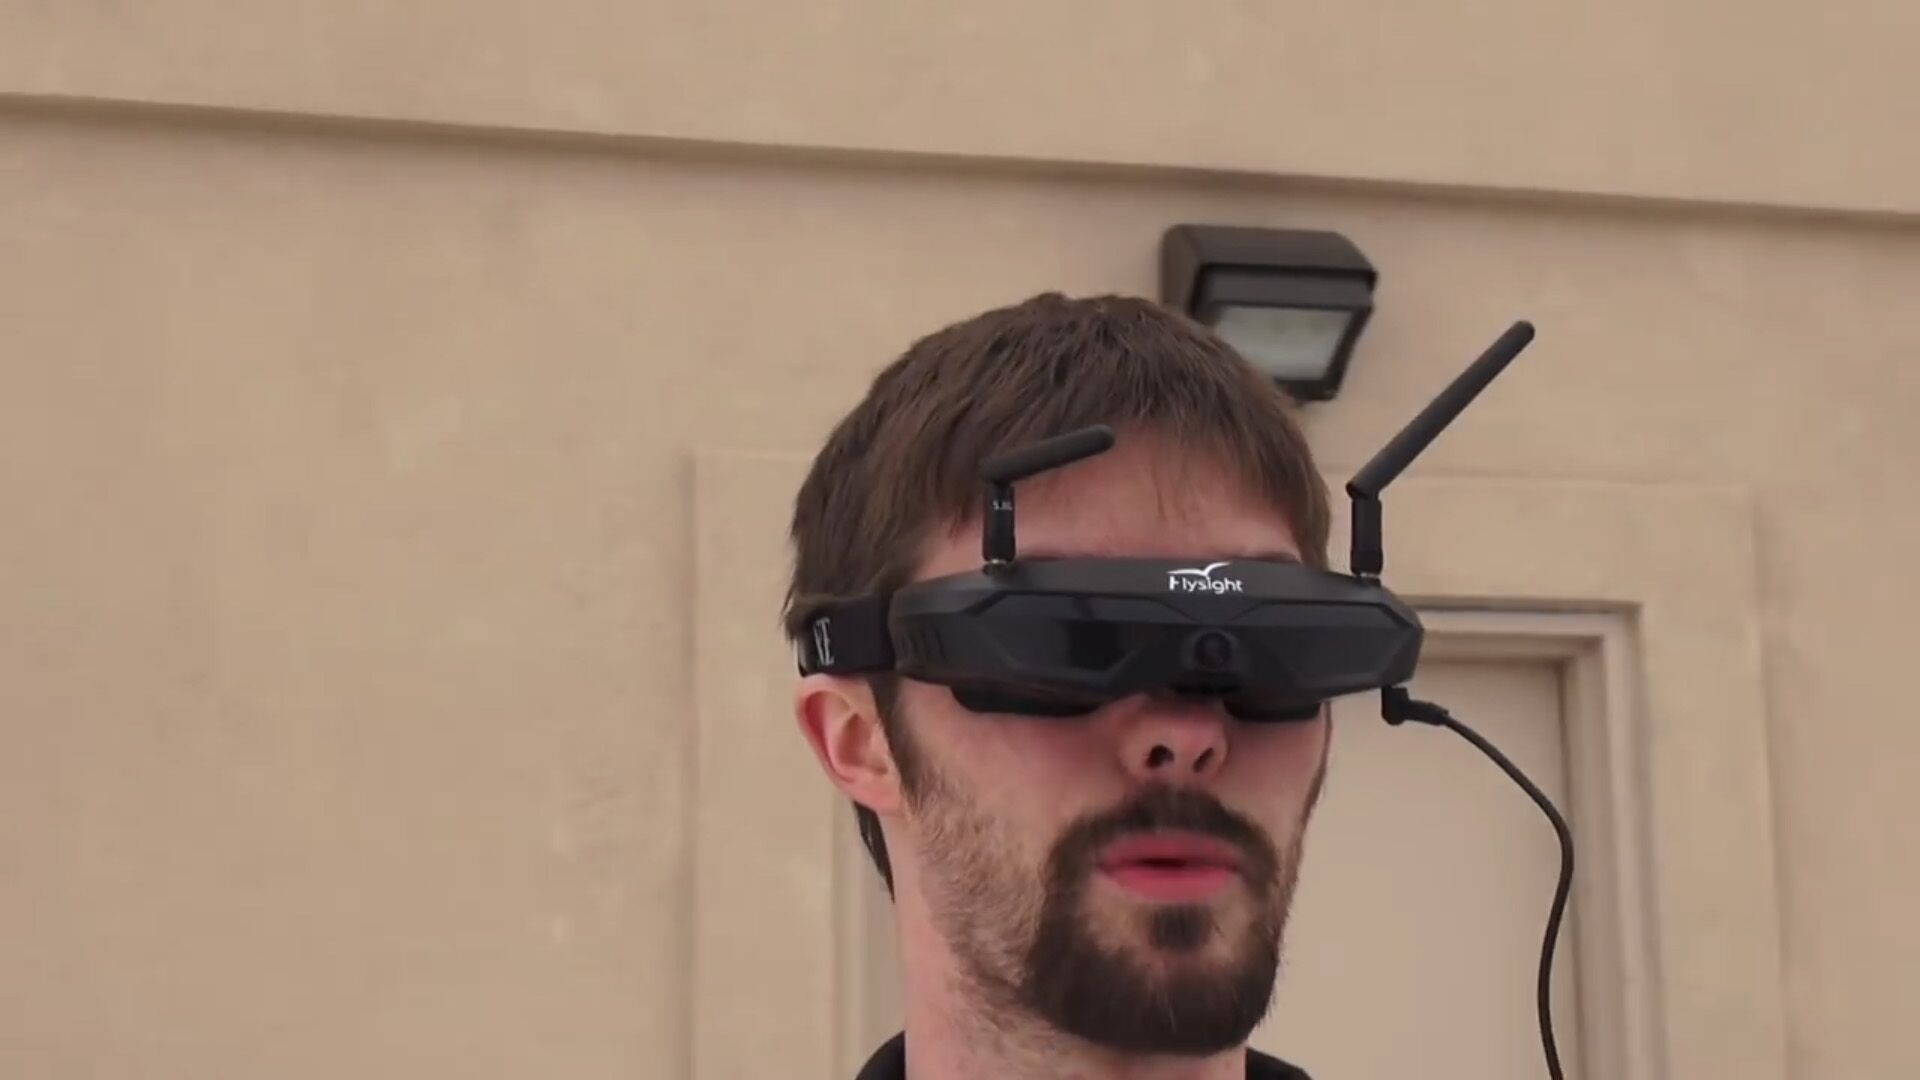 Flysight 40CH FPV Goggles With HDMI In and PIP Function (SPX02 SMA ANT)